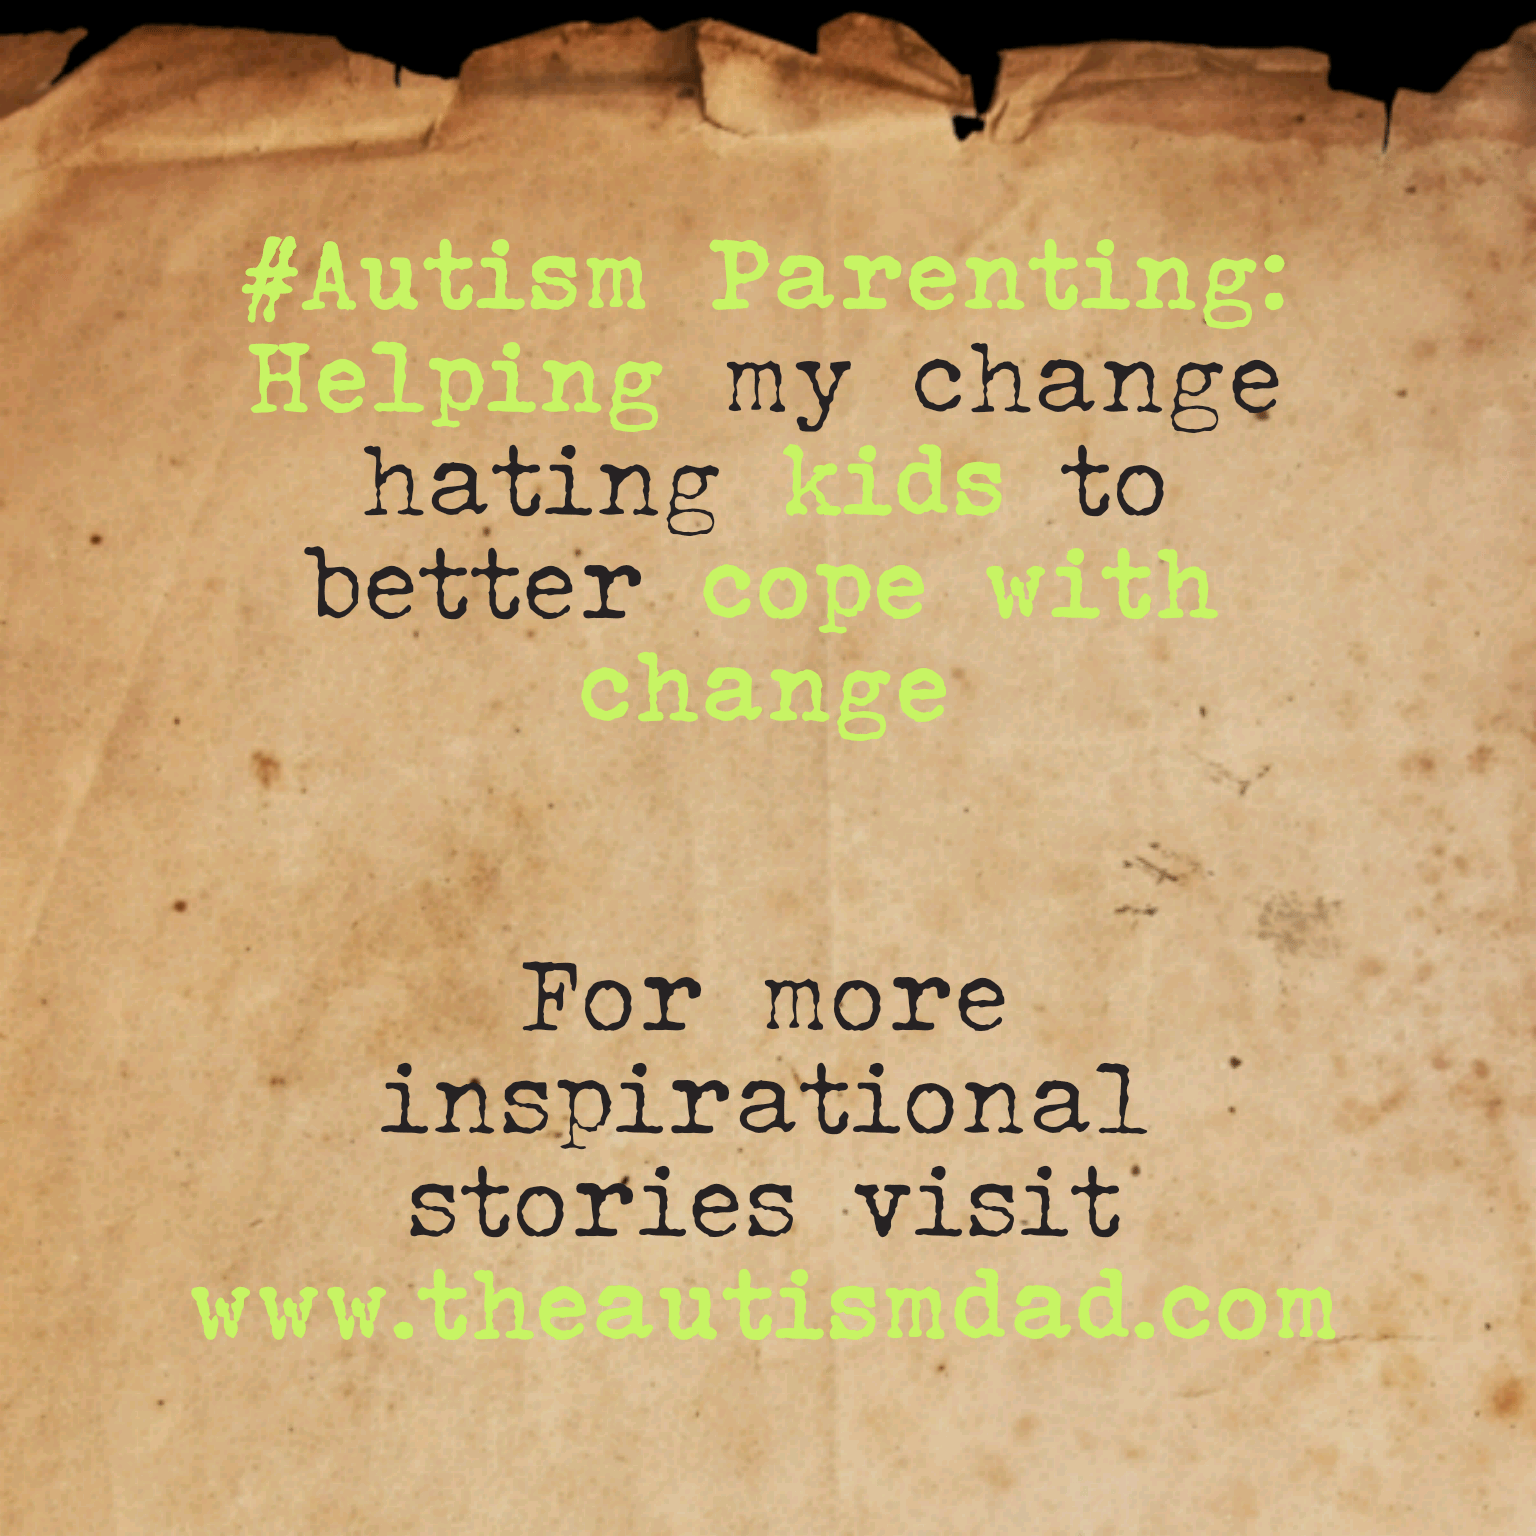 #Autism Parenting: Helping my change hating kids to better cope with change